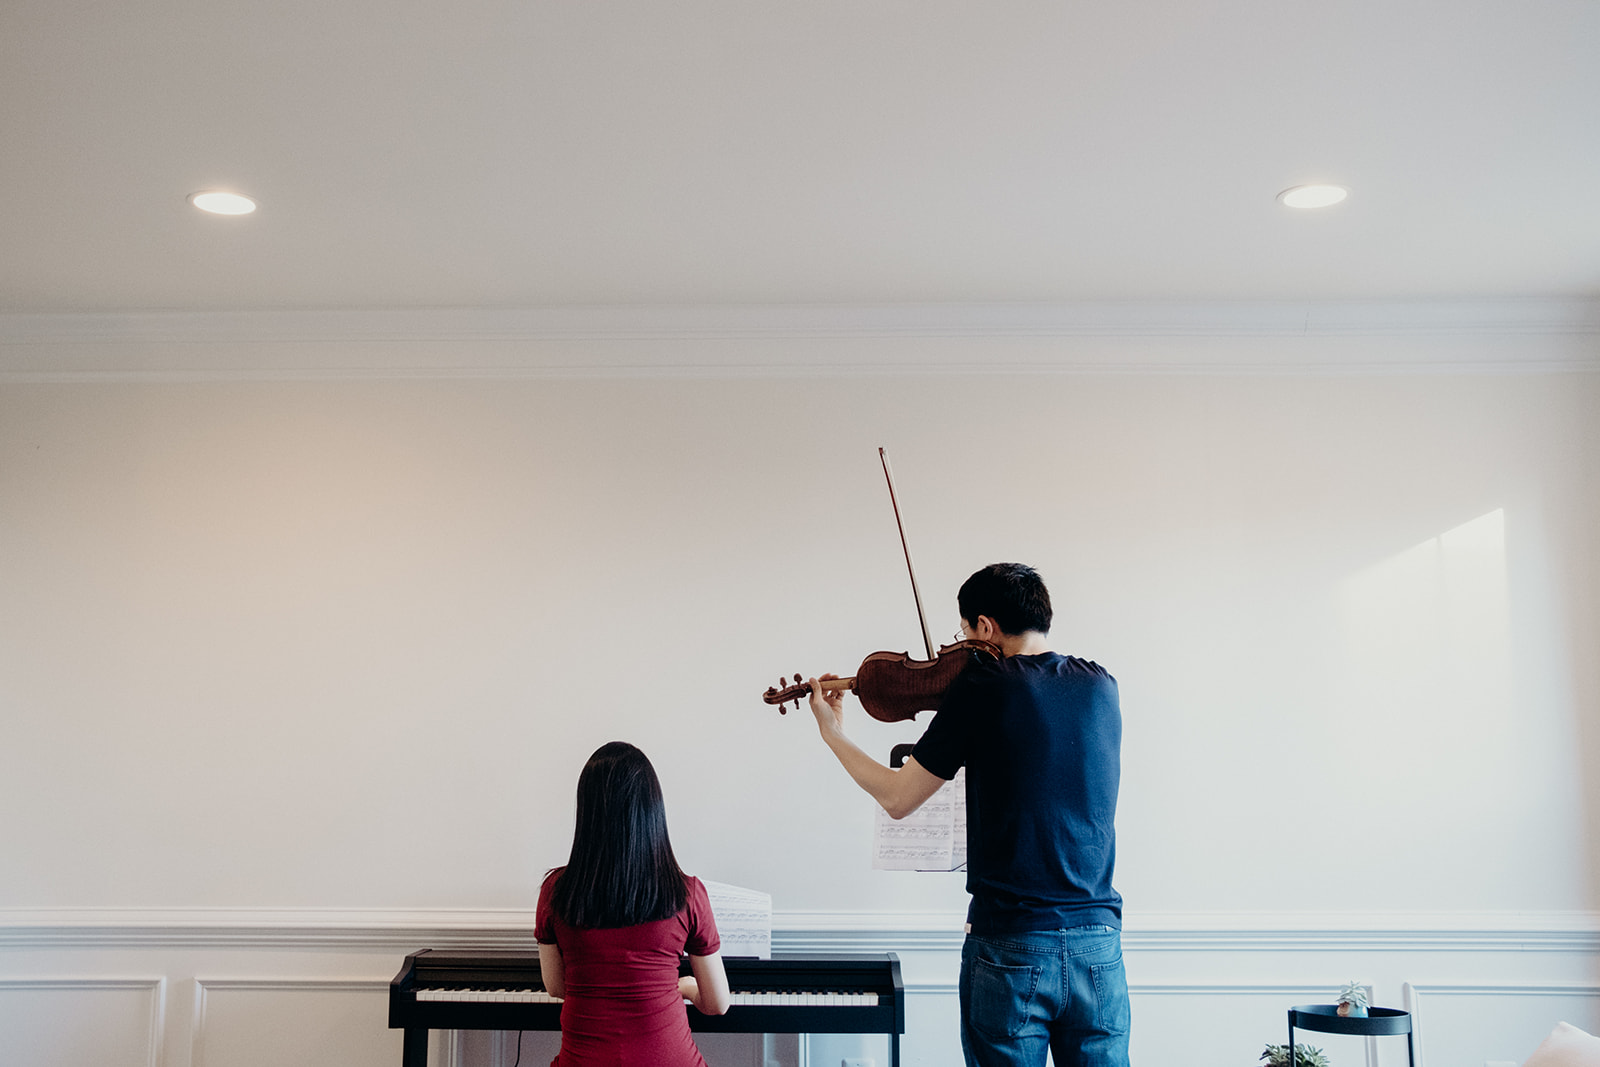 A couple plays music together. The wife plays the piano and the husband plays the violin in their first home together.